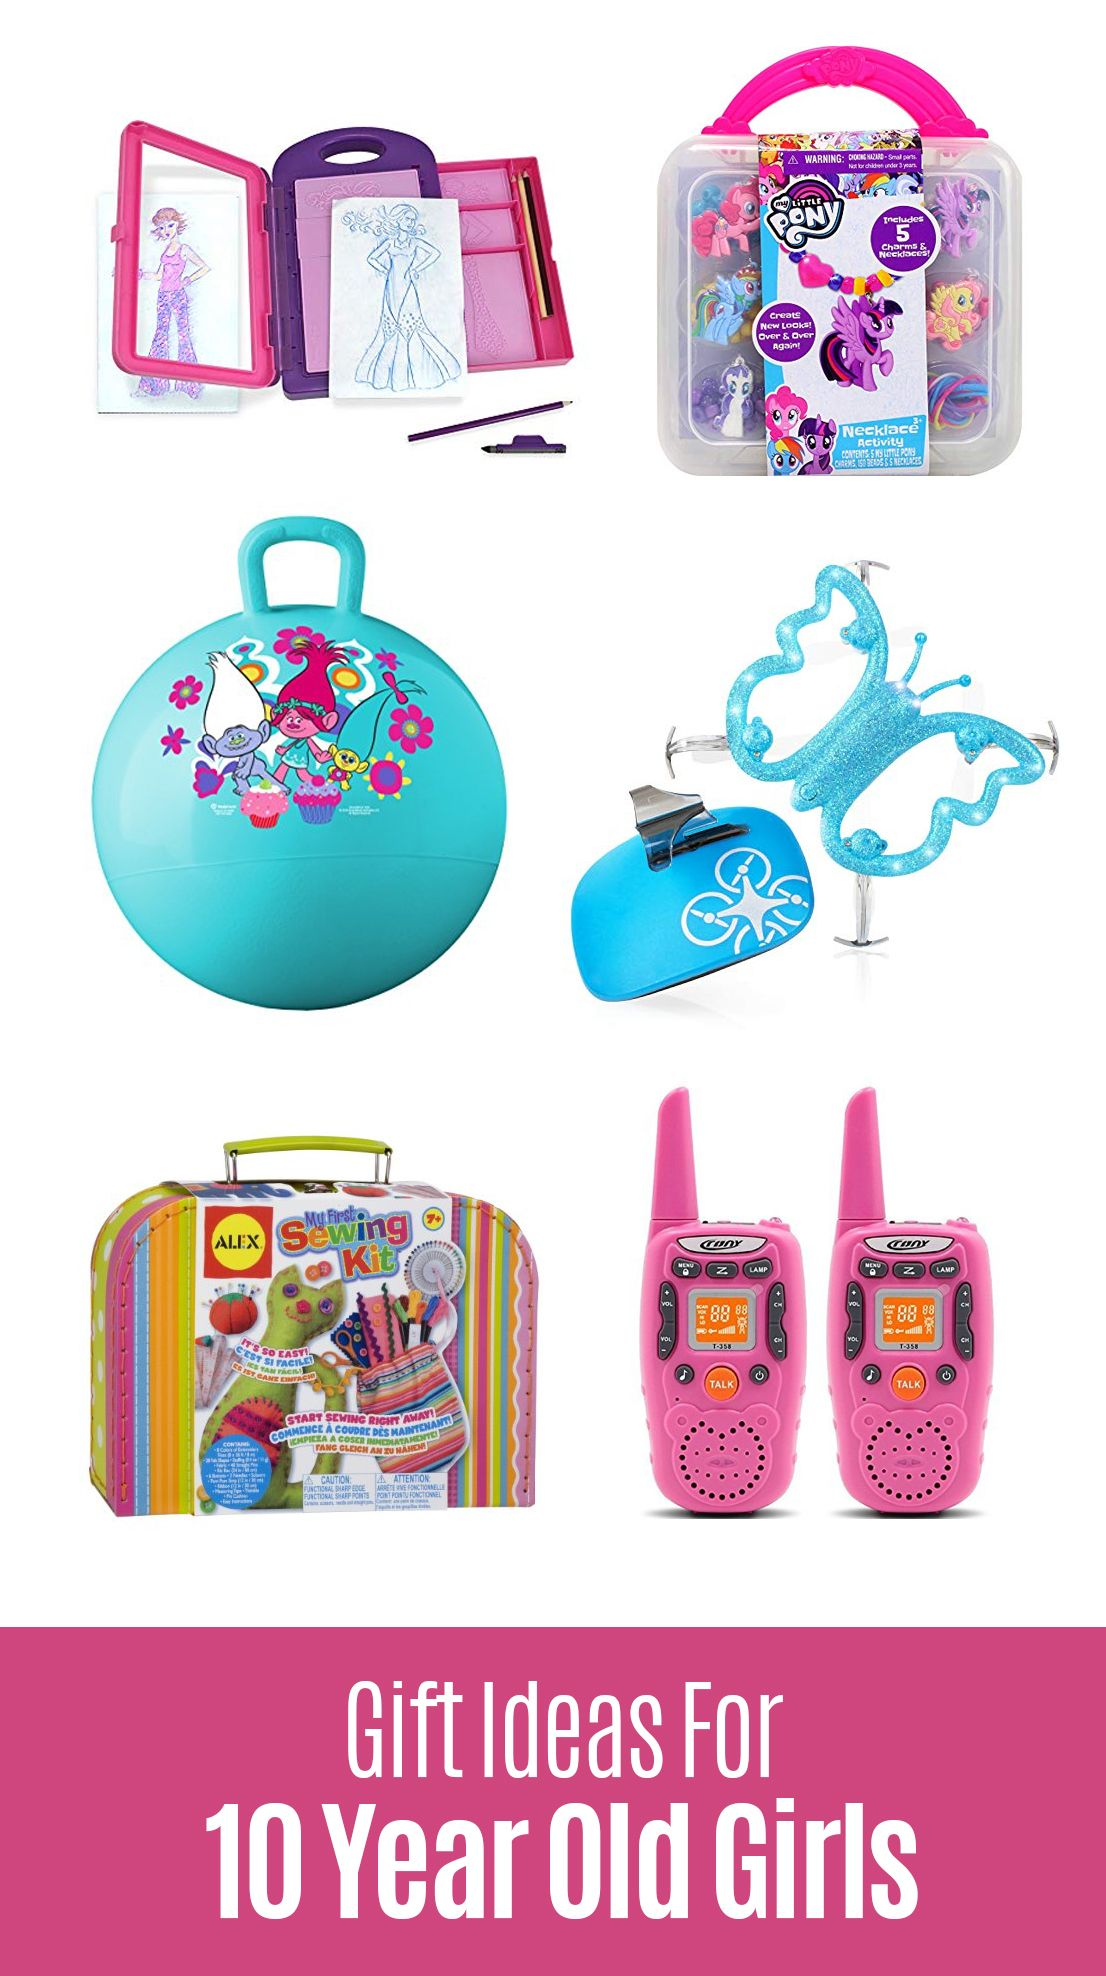 32 Best Toys & Gifts for 10 Year Old Girls in 2020 10